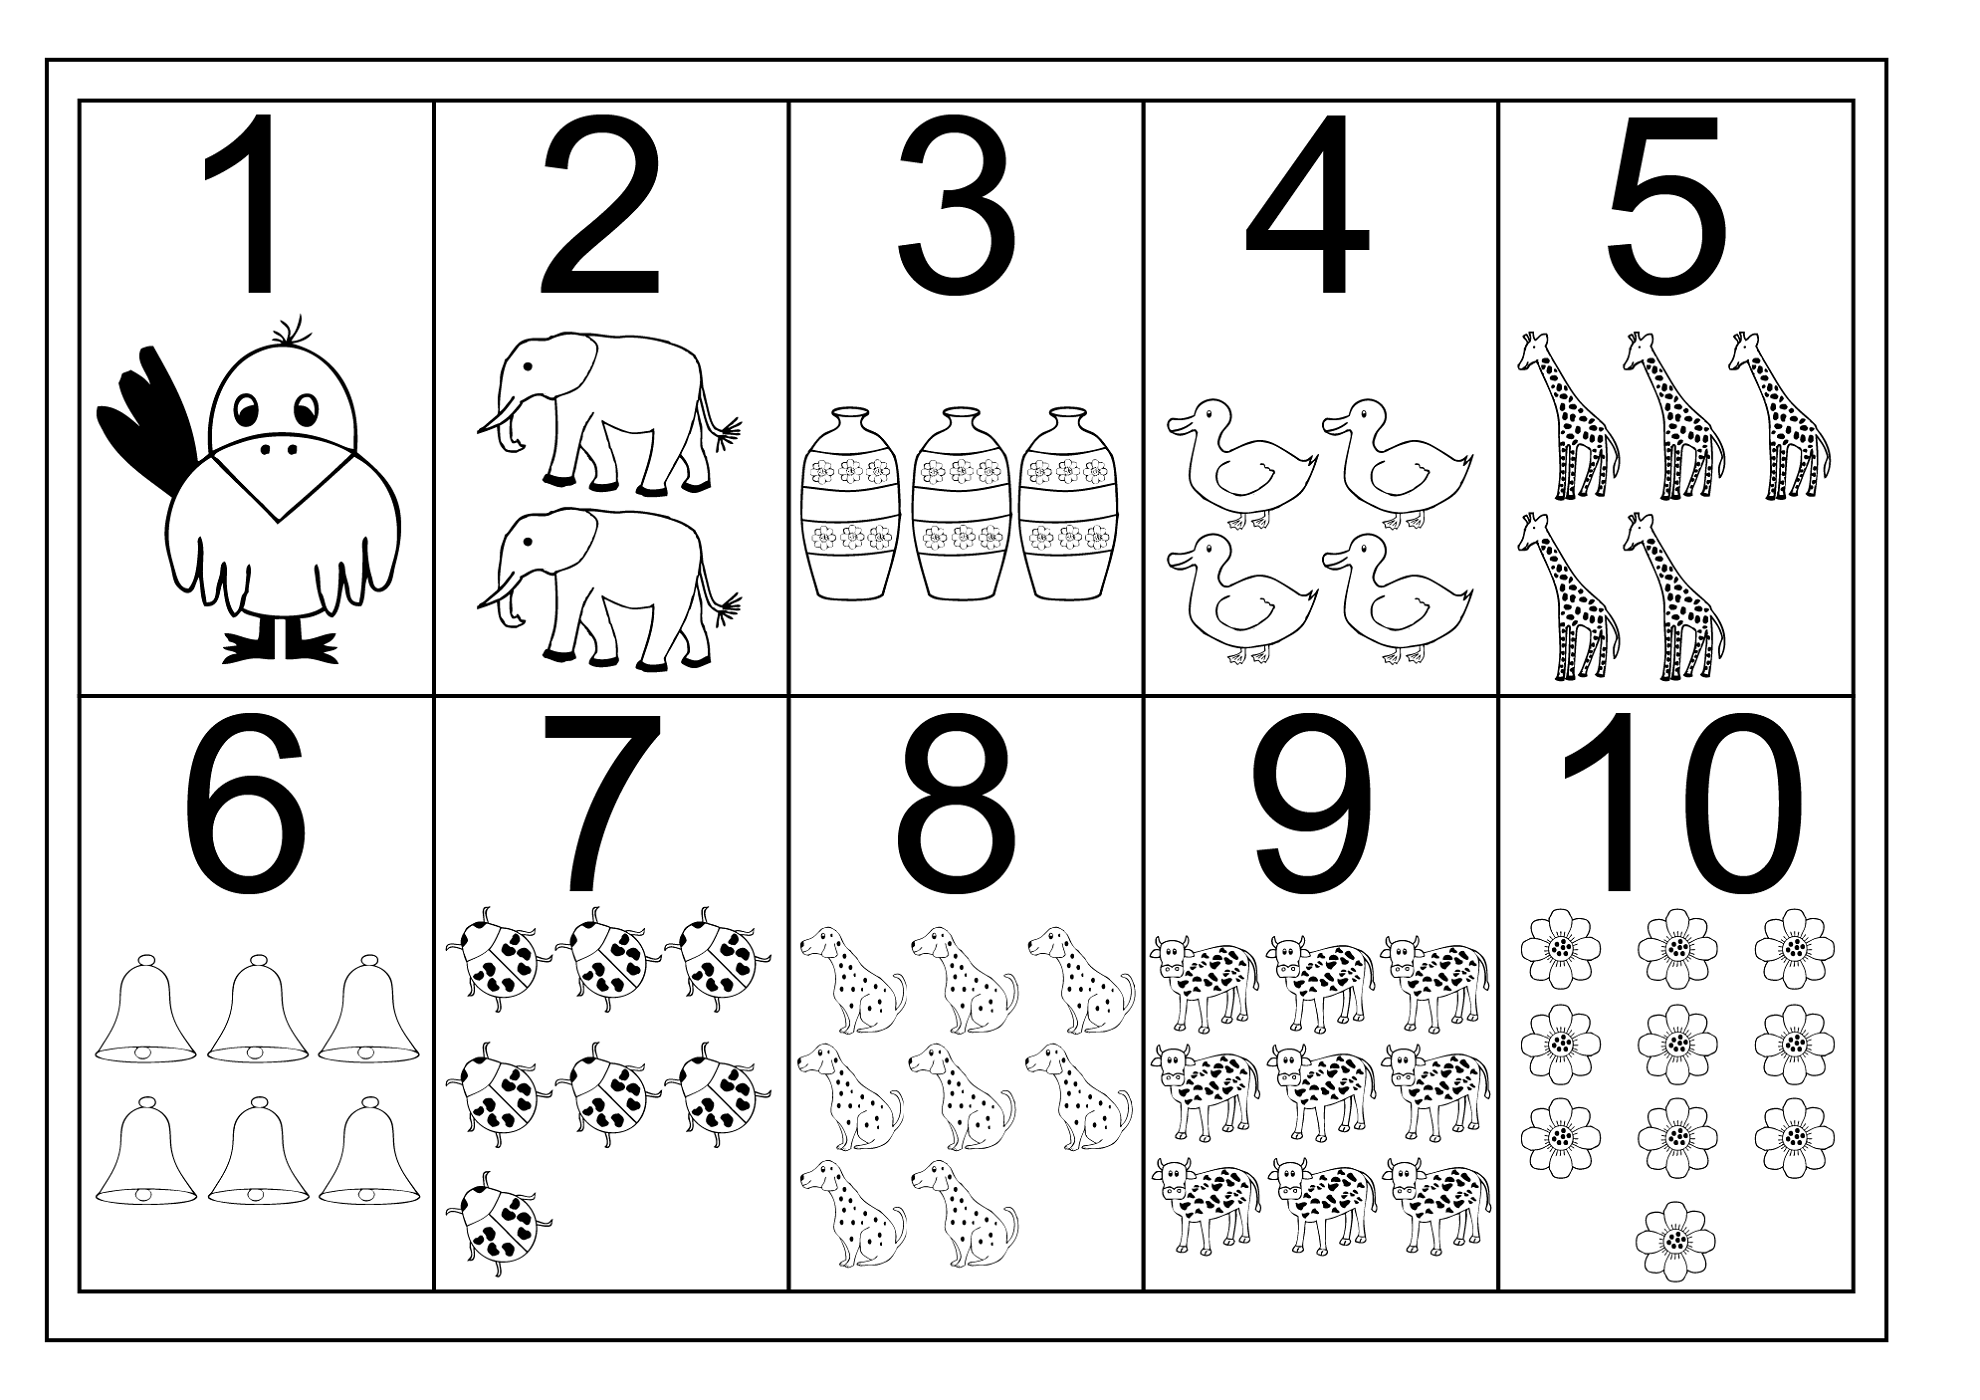 10 Dibujos Para Imprimir Y Colorear: Numbers 1 10 Worksheets - Bloggakuten